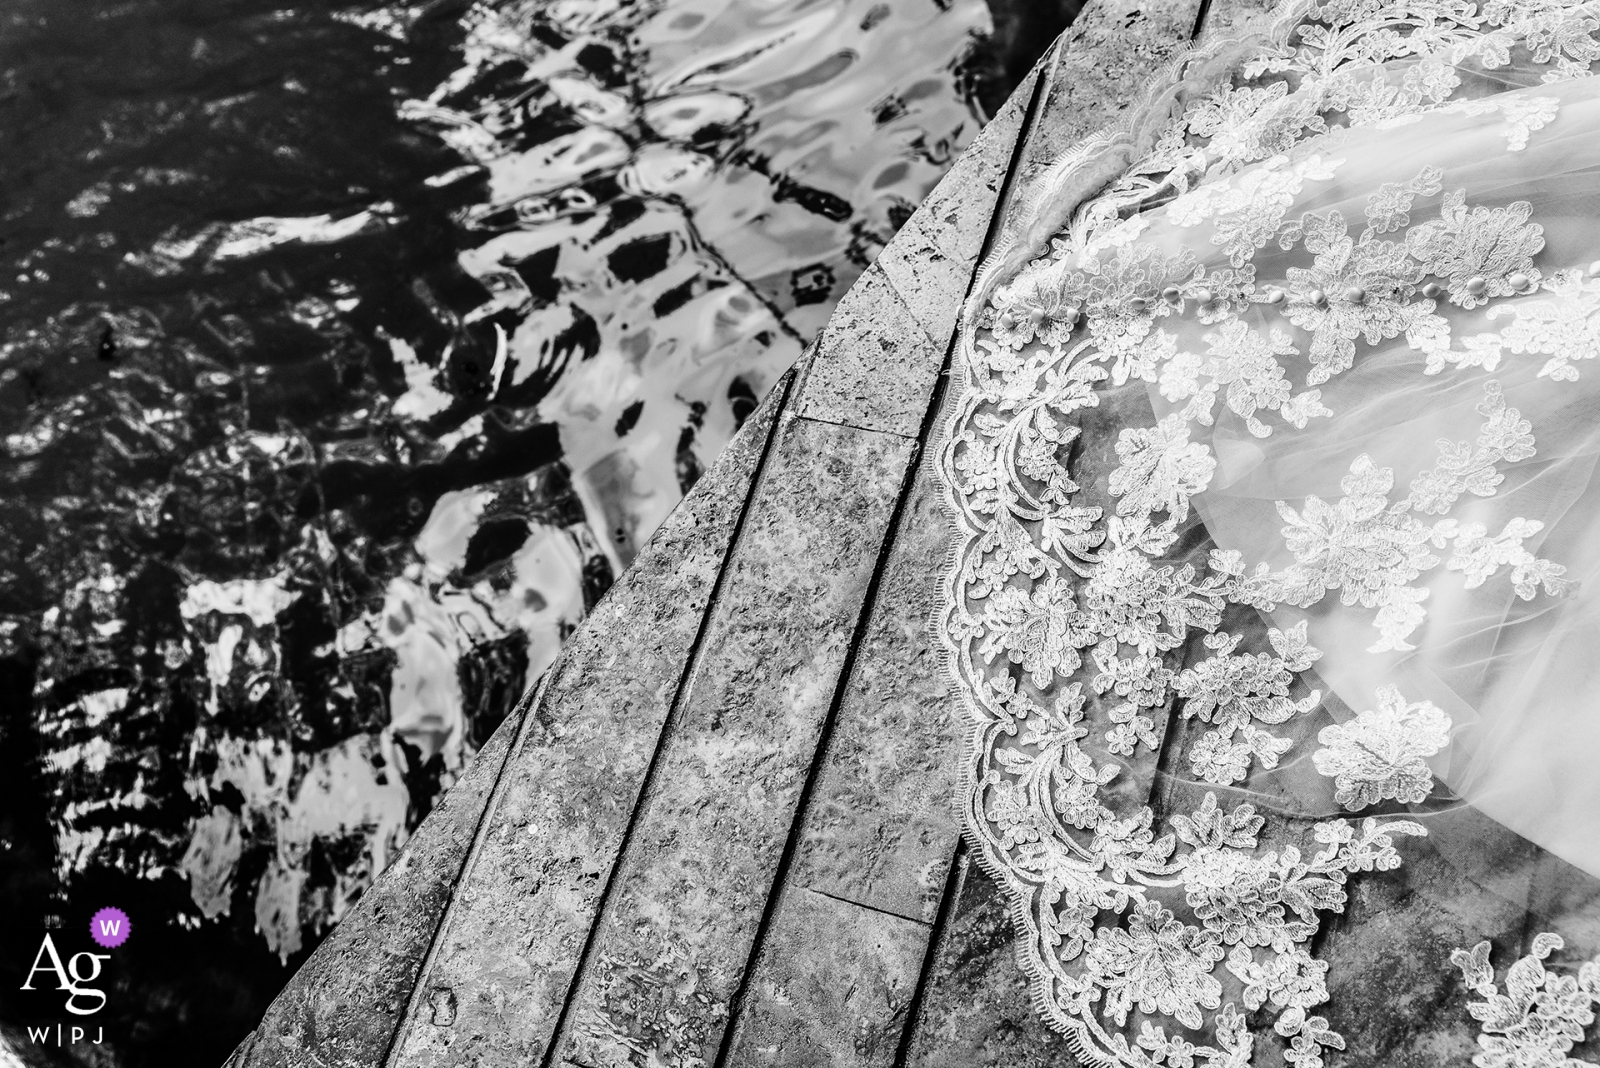 Wedding photographer for the Hotel Xcaret Mexico | Wedding dress detail against the wood Dock and water in black-and-white